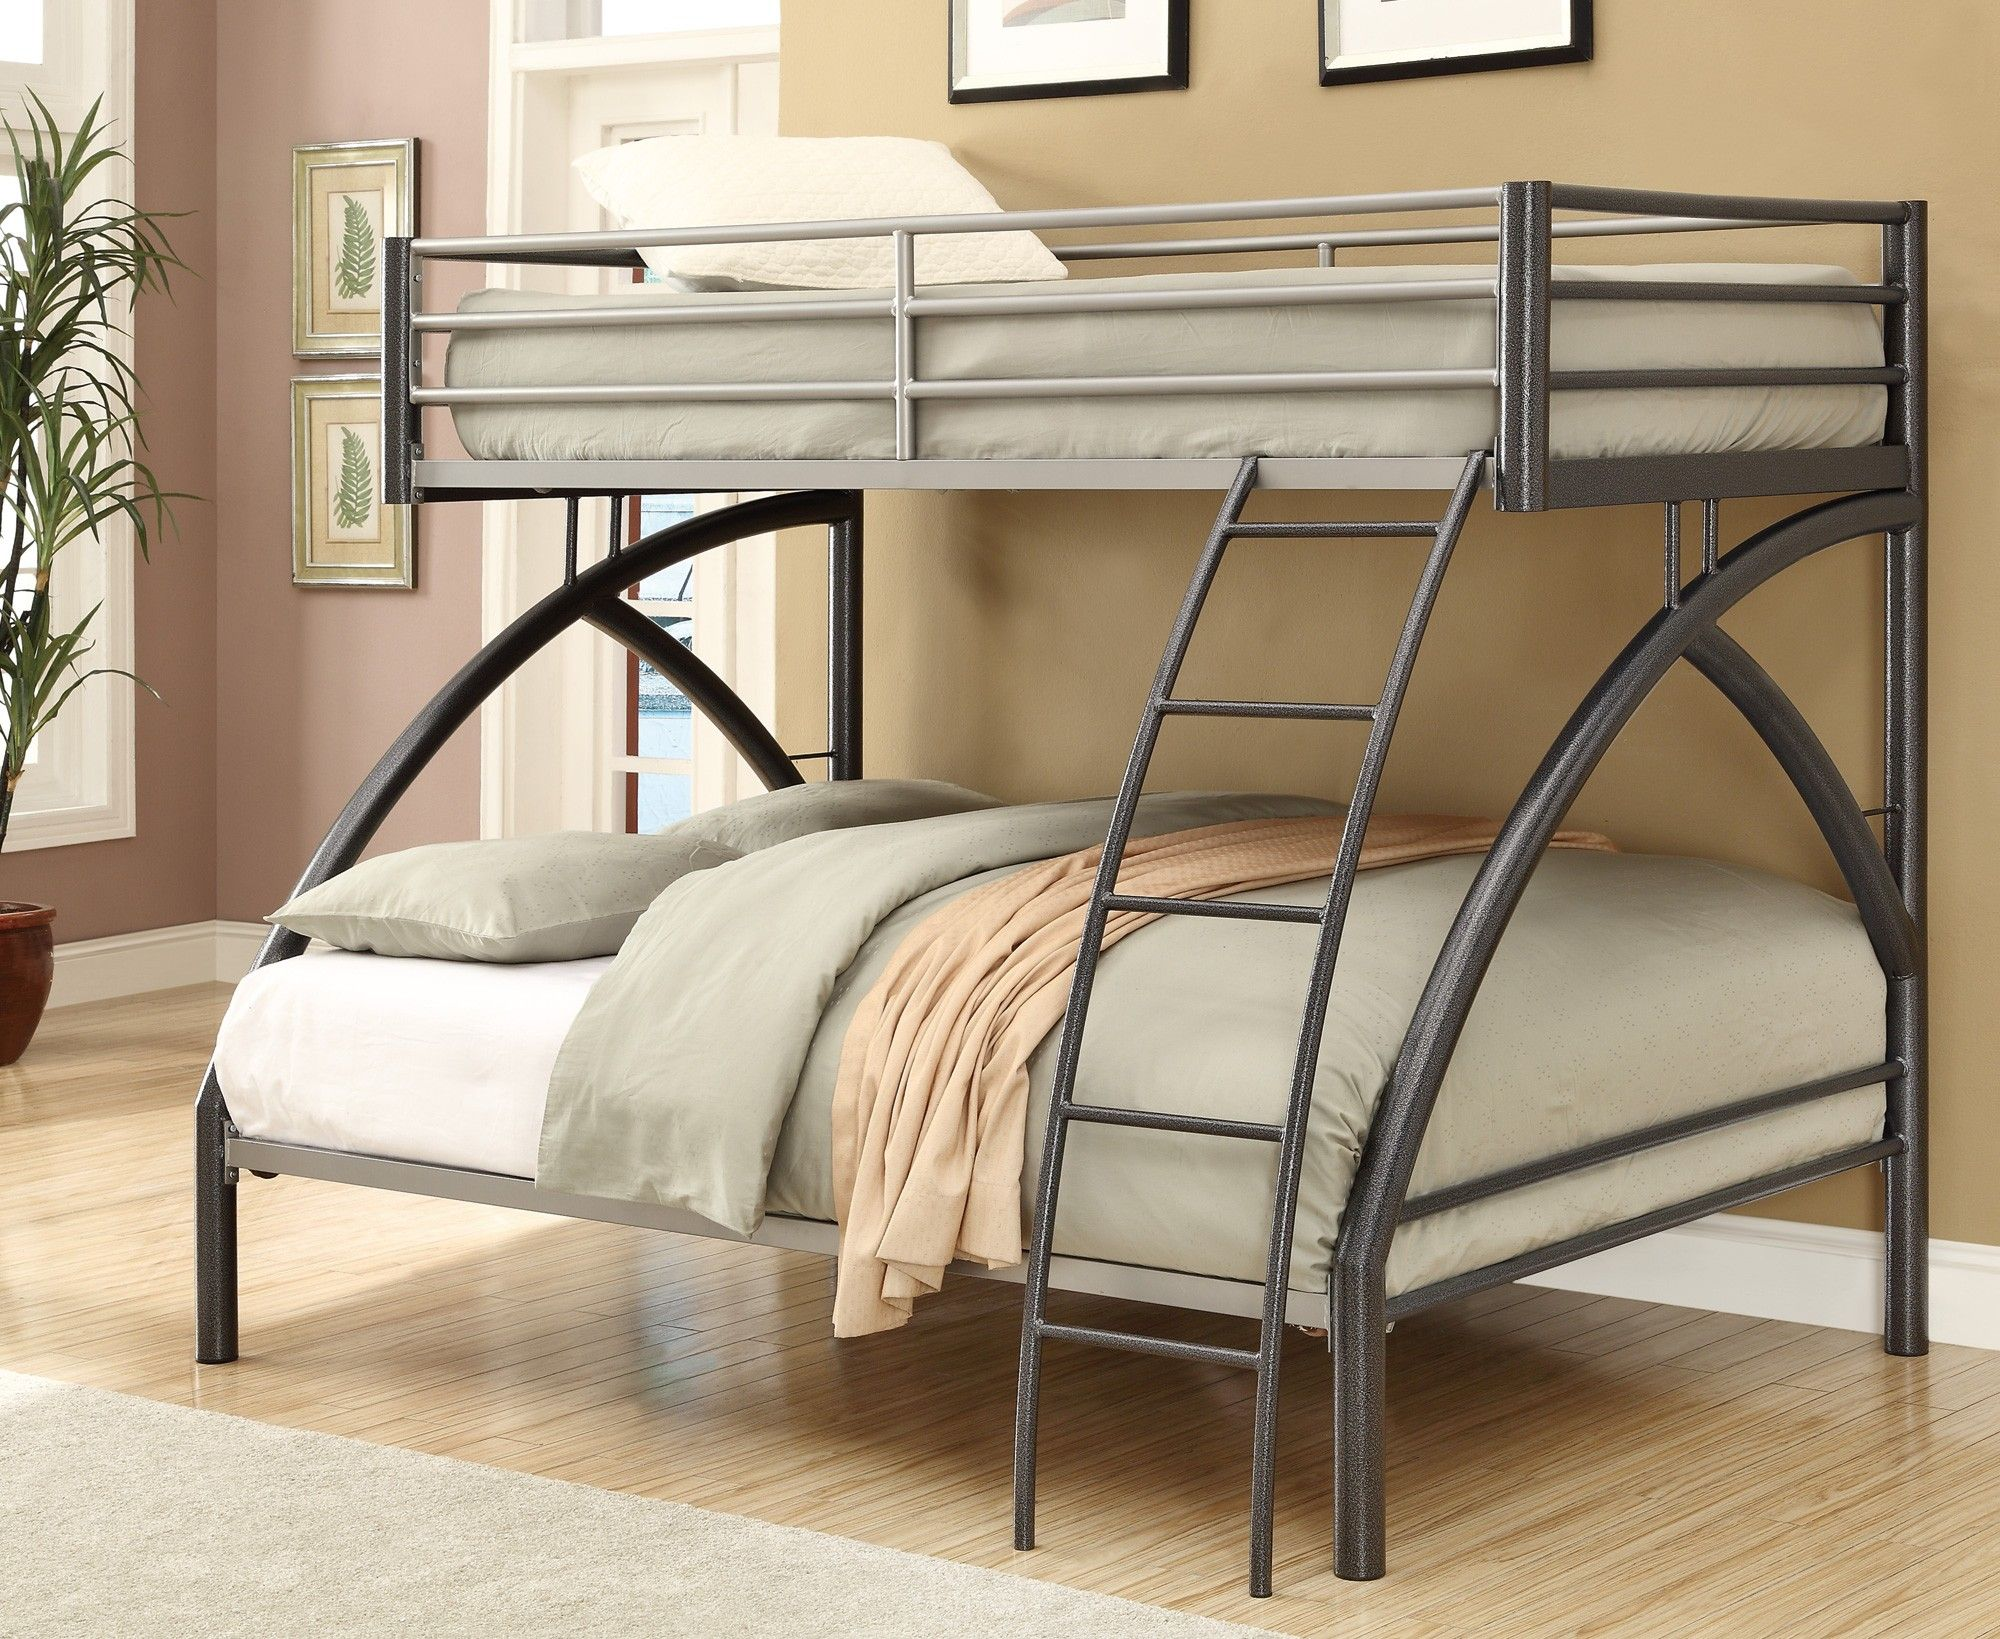 Bedroom ideas with loft bed   Black Twin Over Full Bunk Bed  Down the Shore  Pinterest